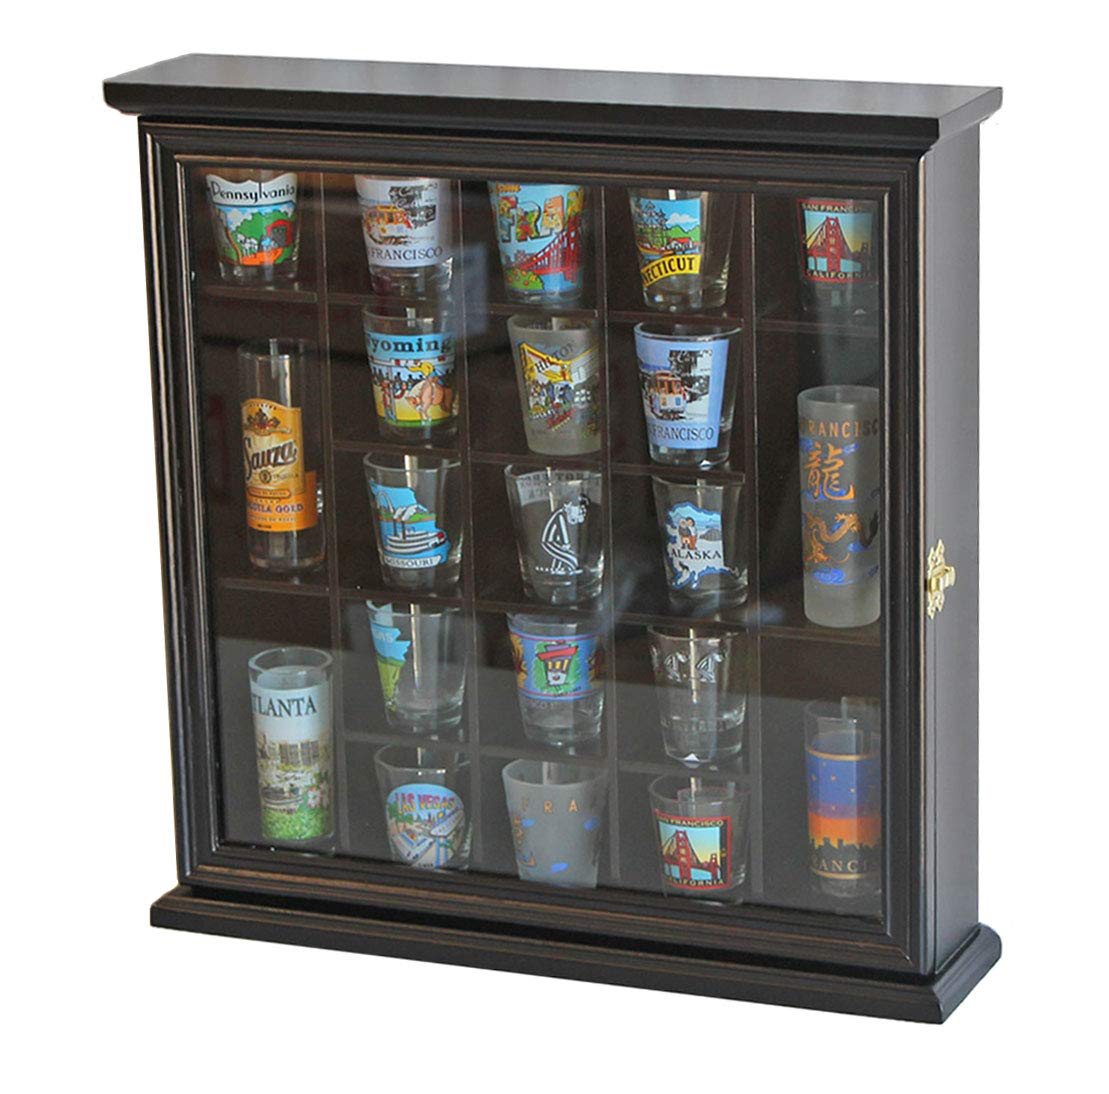 21 Shot Glass Shooter Display Case Holder Rack Wall Cabinet, Glass Door, SC01 (Black Finish) by DisplayGifts